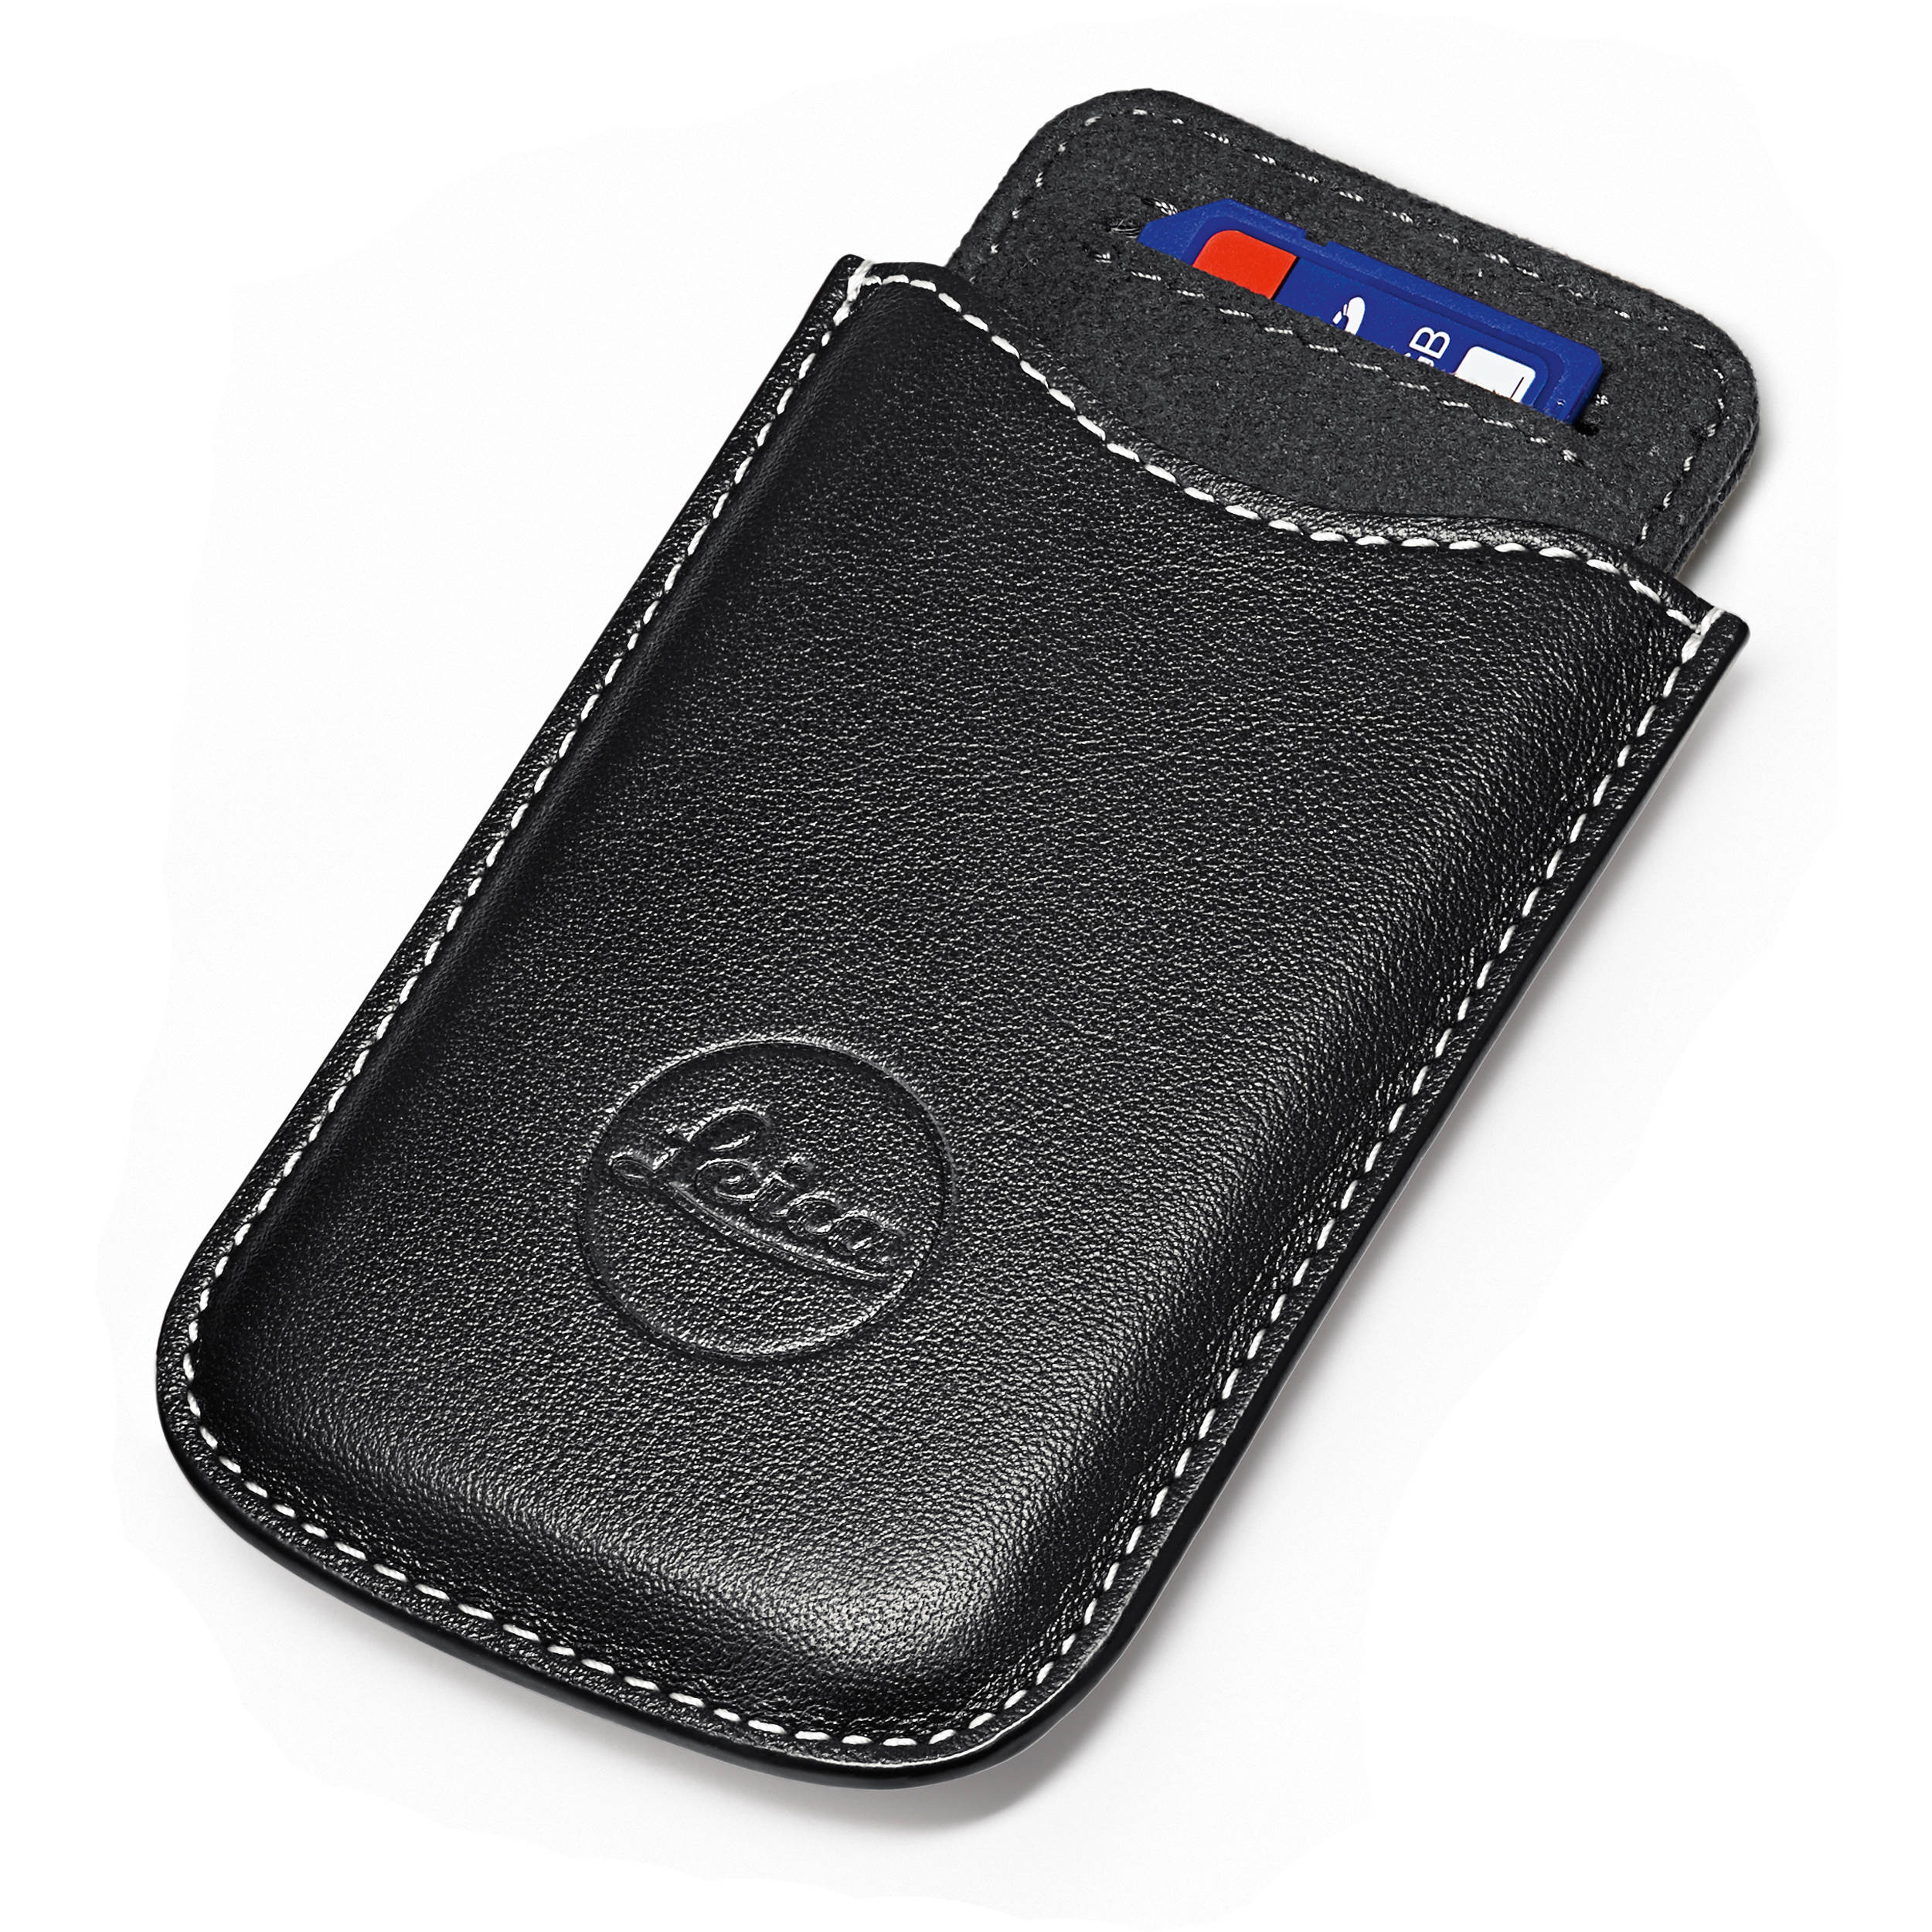 shown with optional accessories - Card Holder